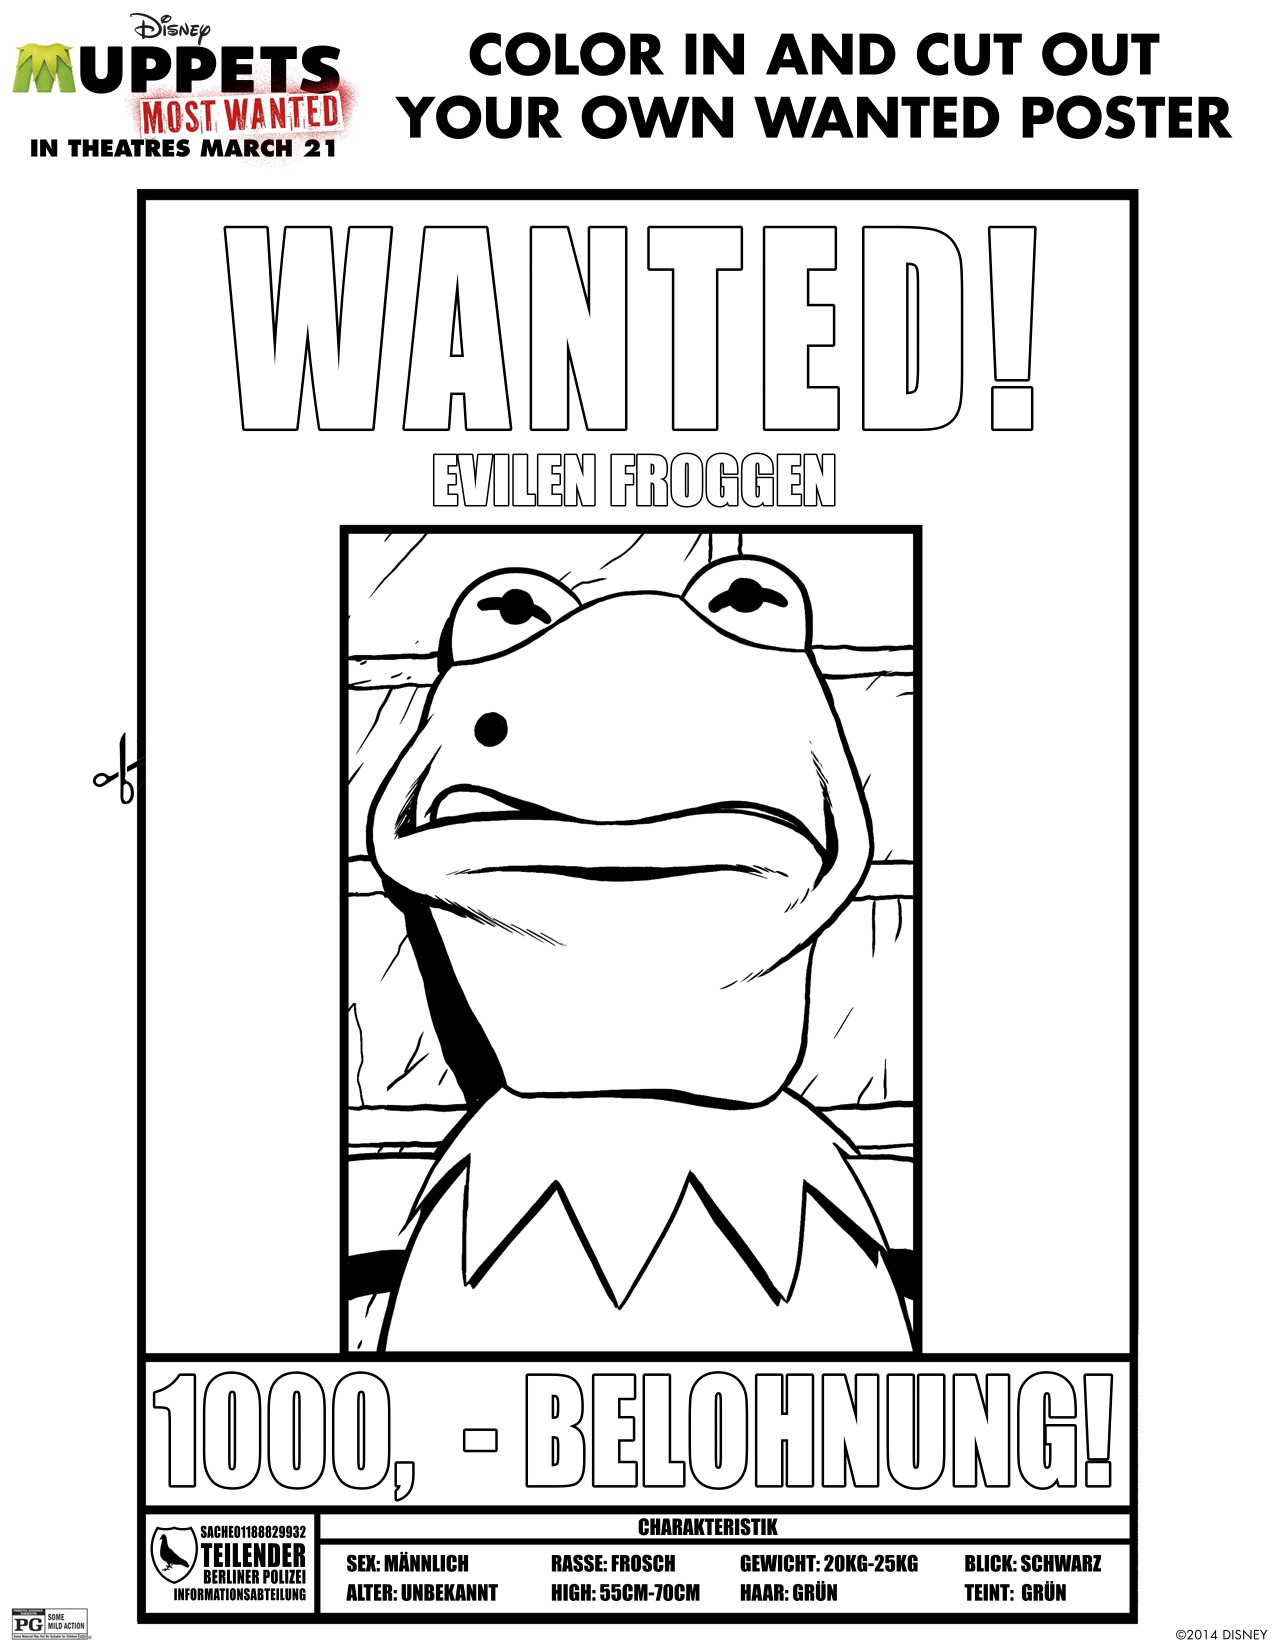 Kermit-Wanted-Poster-Coloring-Page copy.jpg